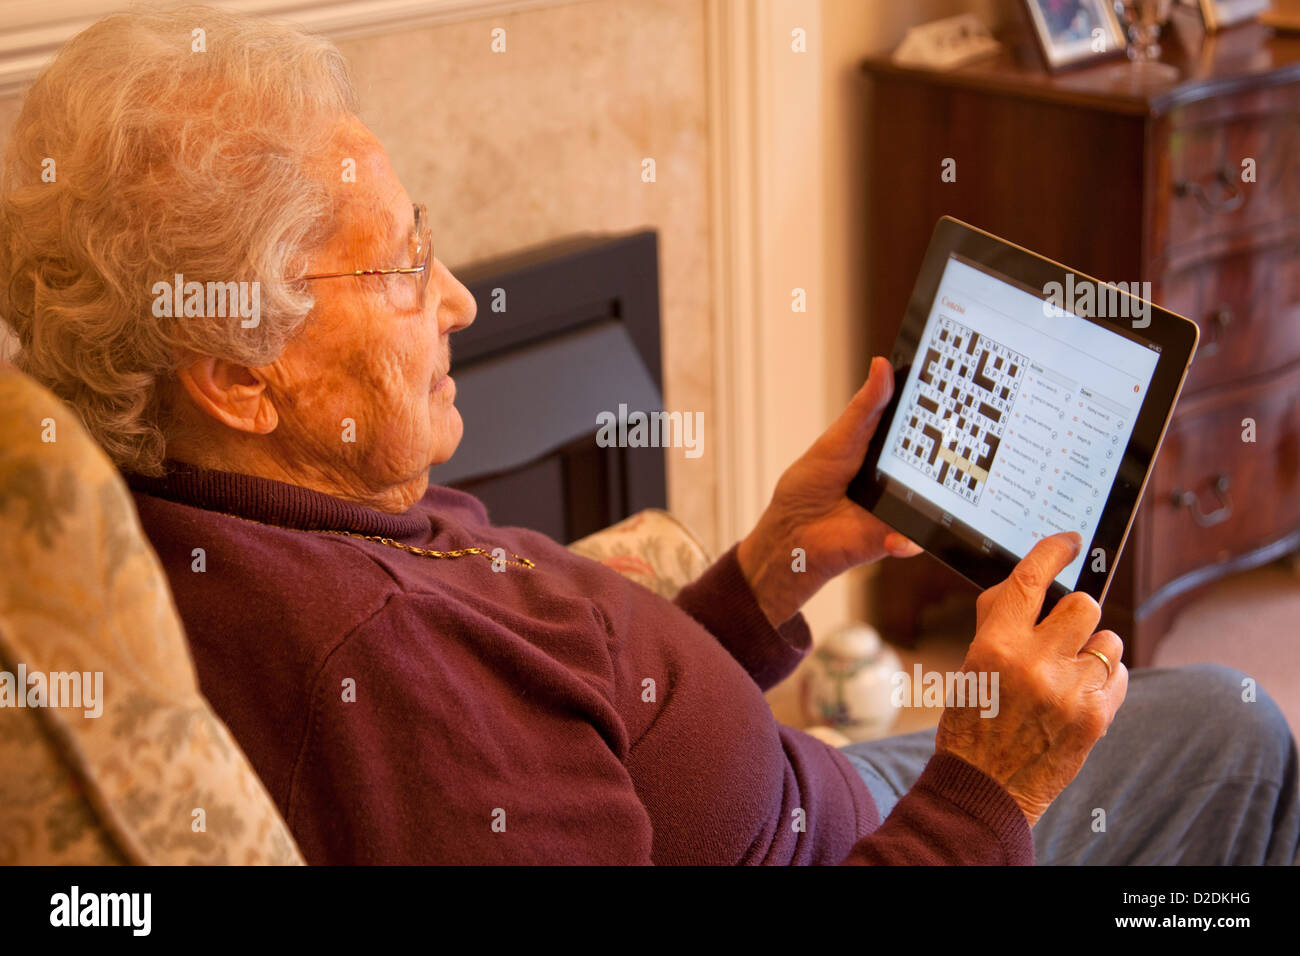 Elderly woman pensioner with glasses on apple ipad tablet at home relaxing and doing a newspaper crossword on-line - Stock Image